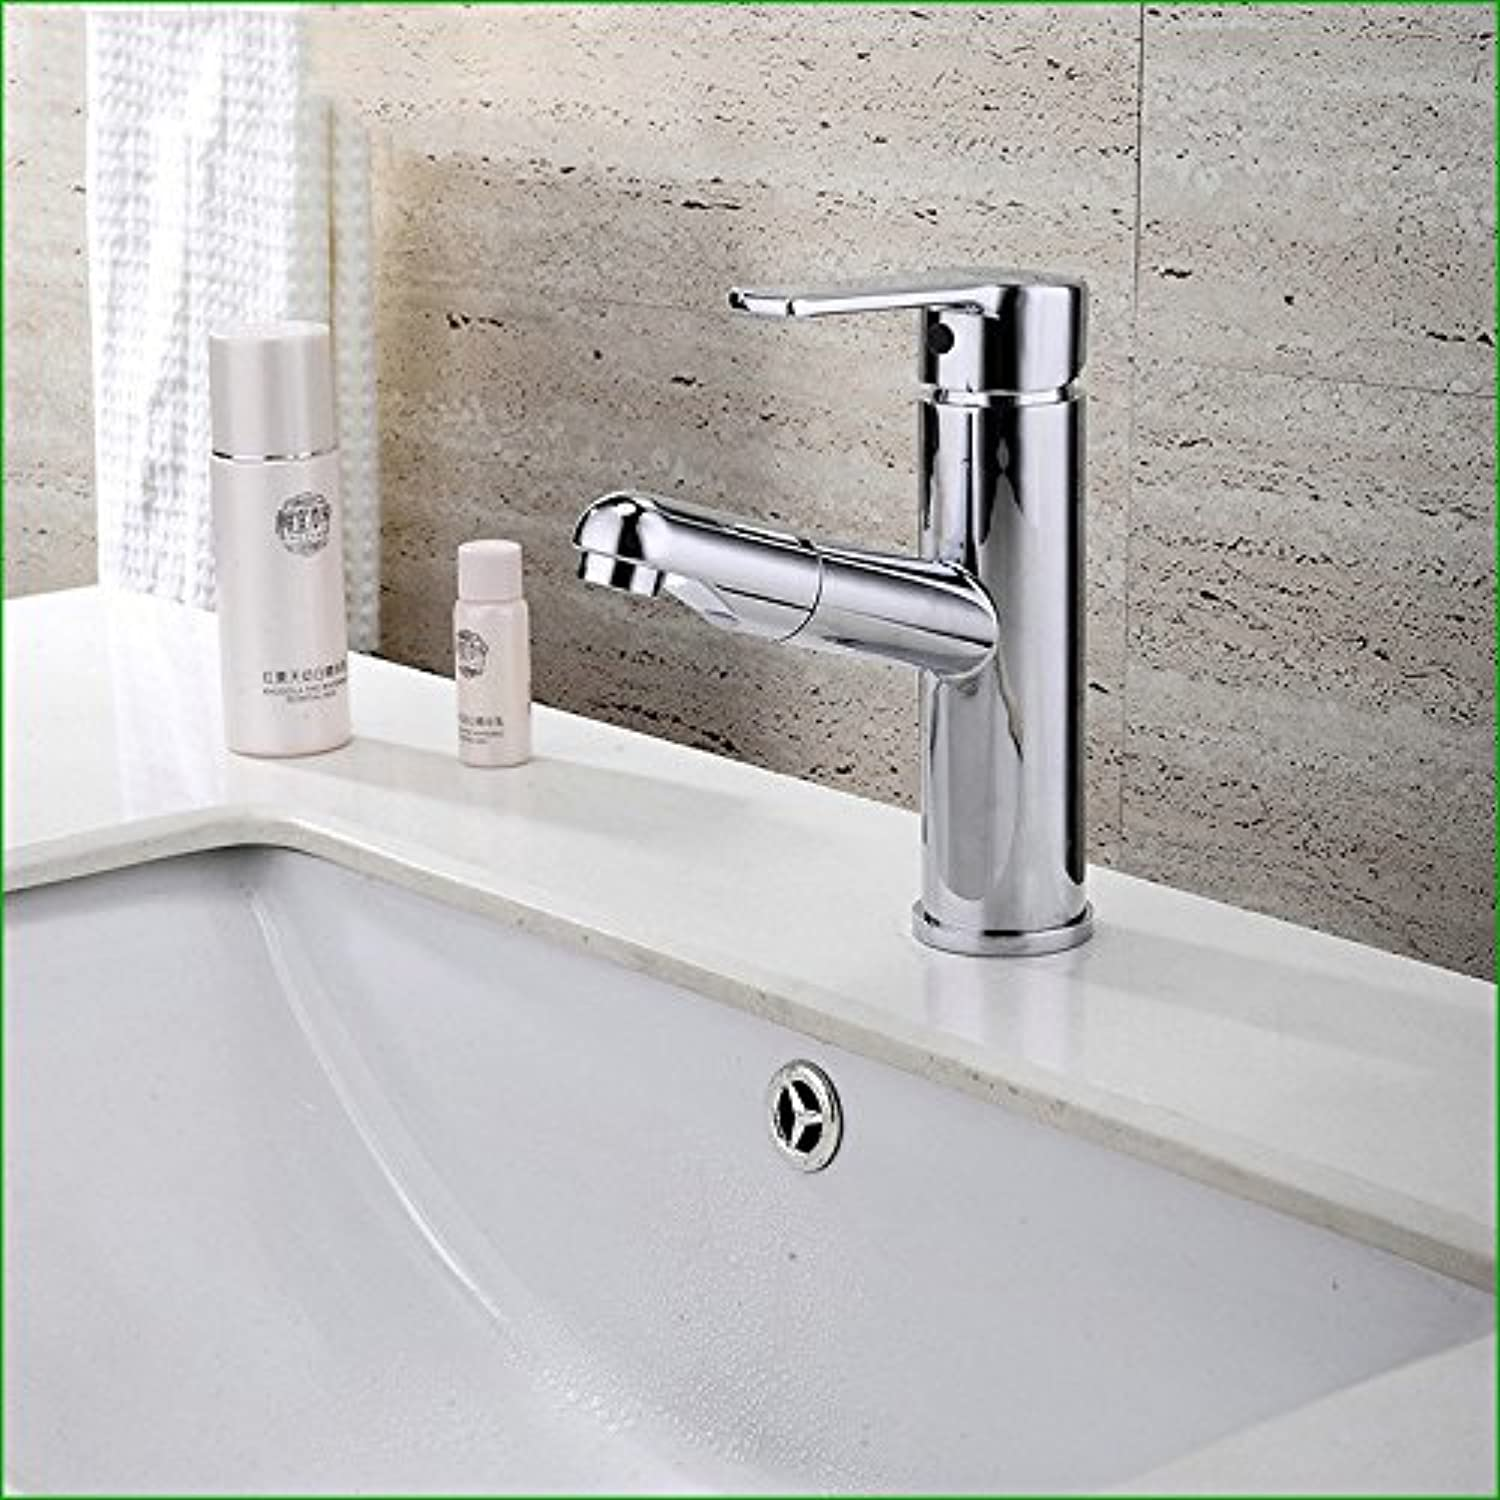 Kokeruup Sink Faucet Pull Out Copper   Chrome Bathroom     Basin Faucet     hot and Cold Water Mixed Water Pull Faucet Mixing Faucet